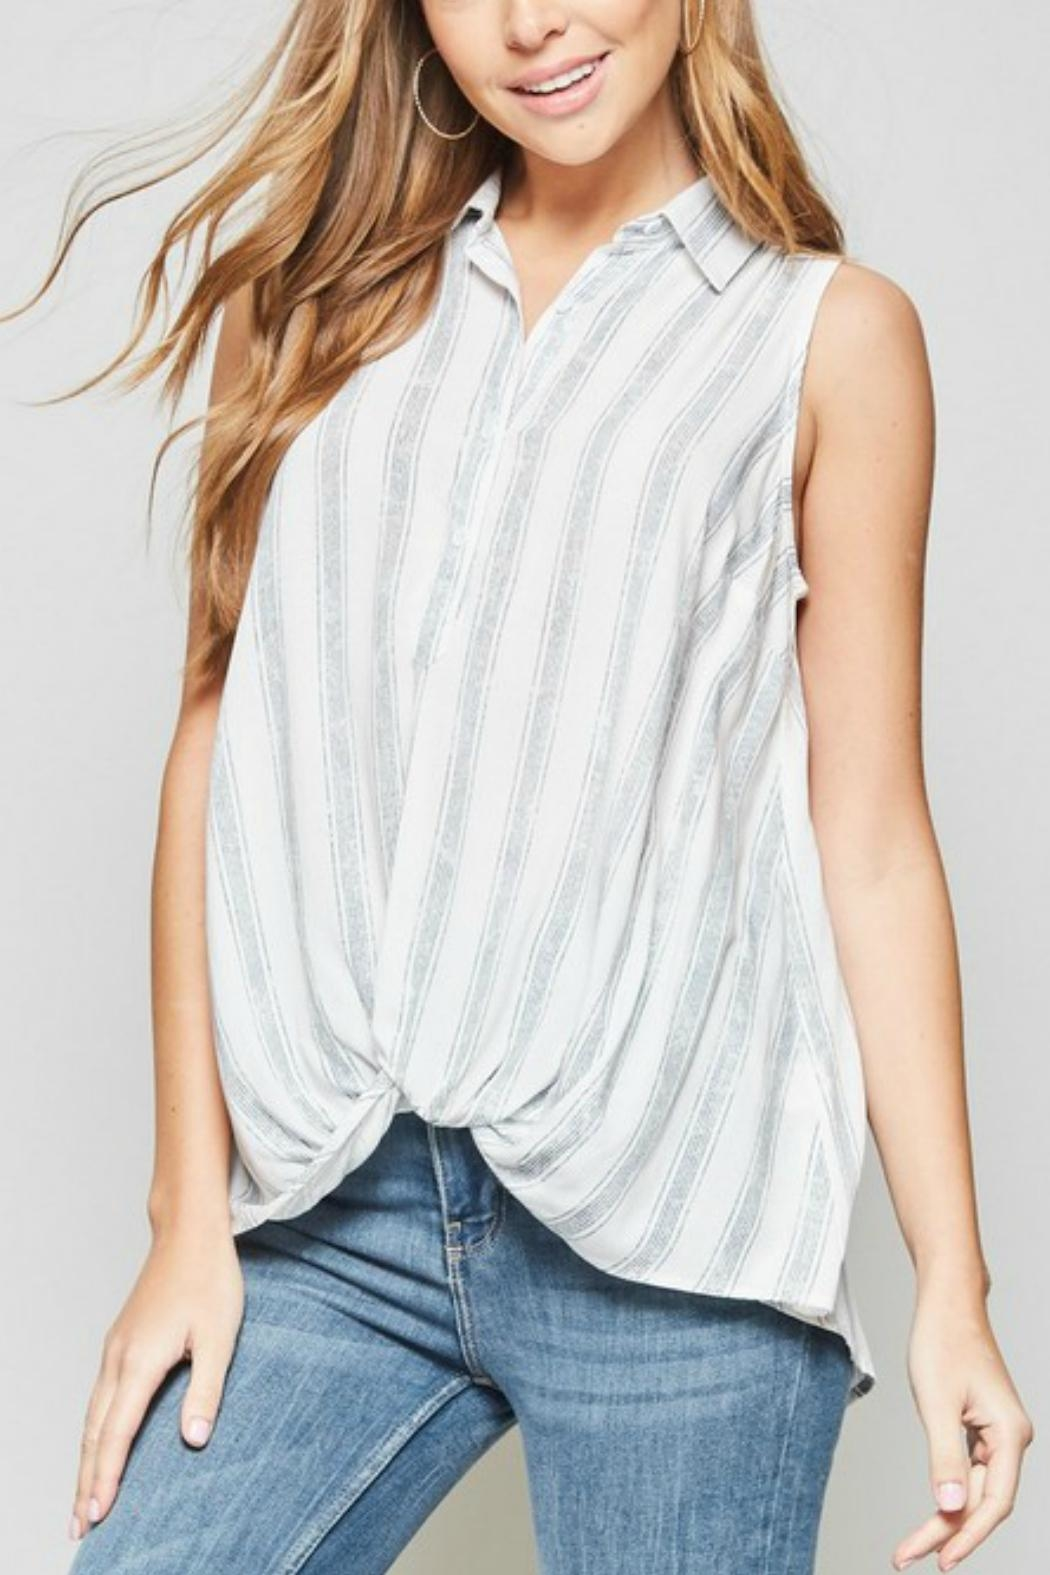 Andree by Unit Sleeveless Knotted Shirt - Main Image